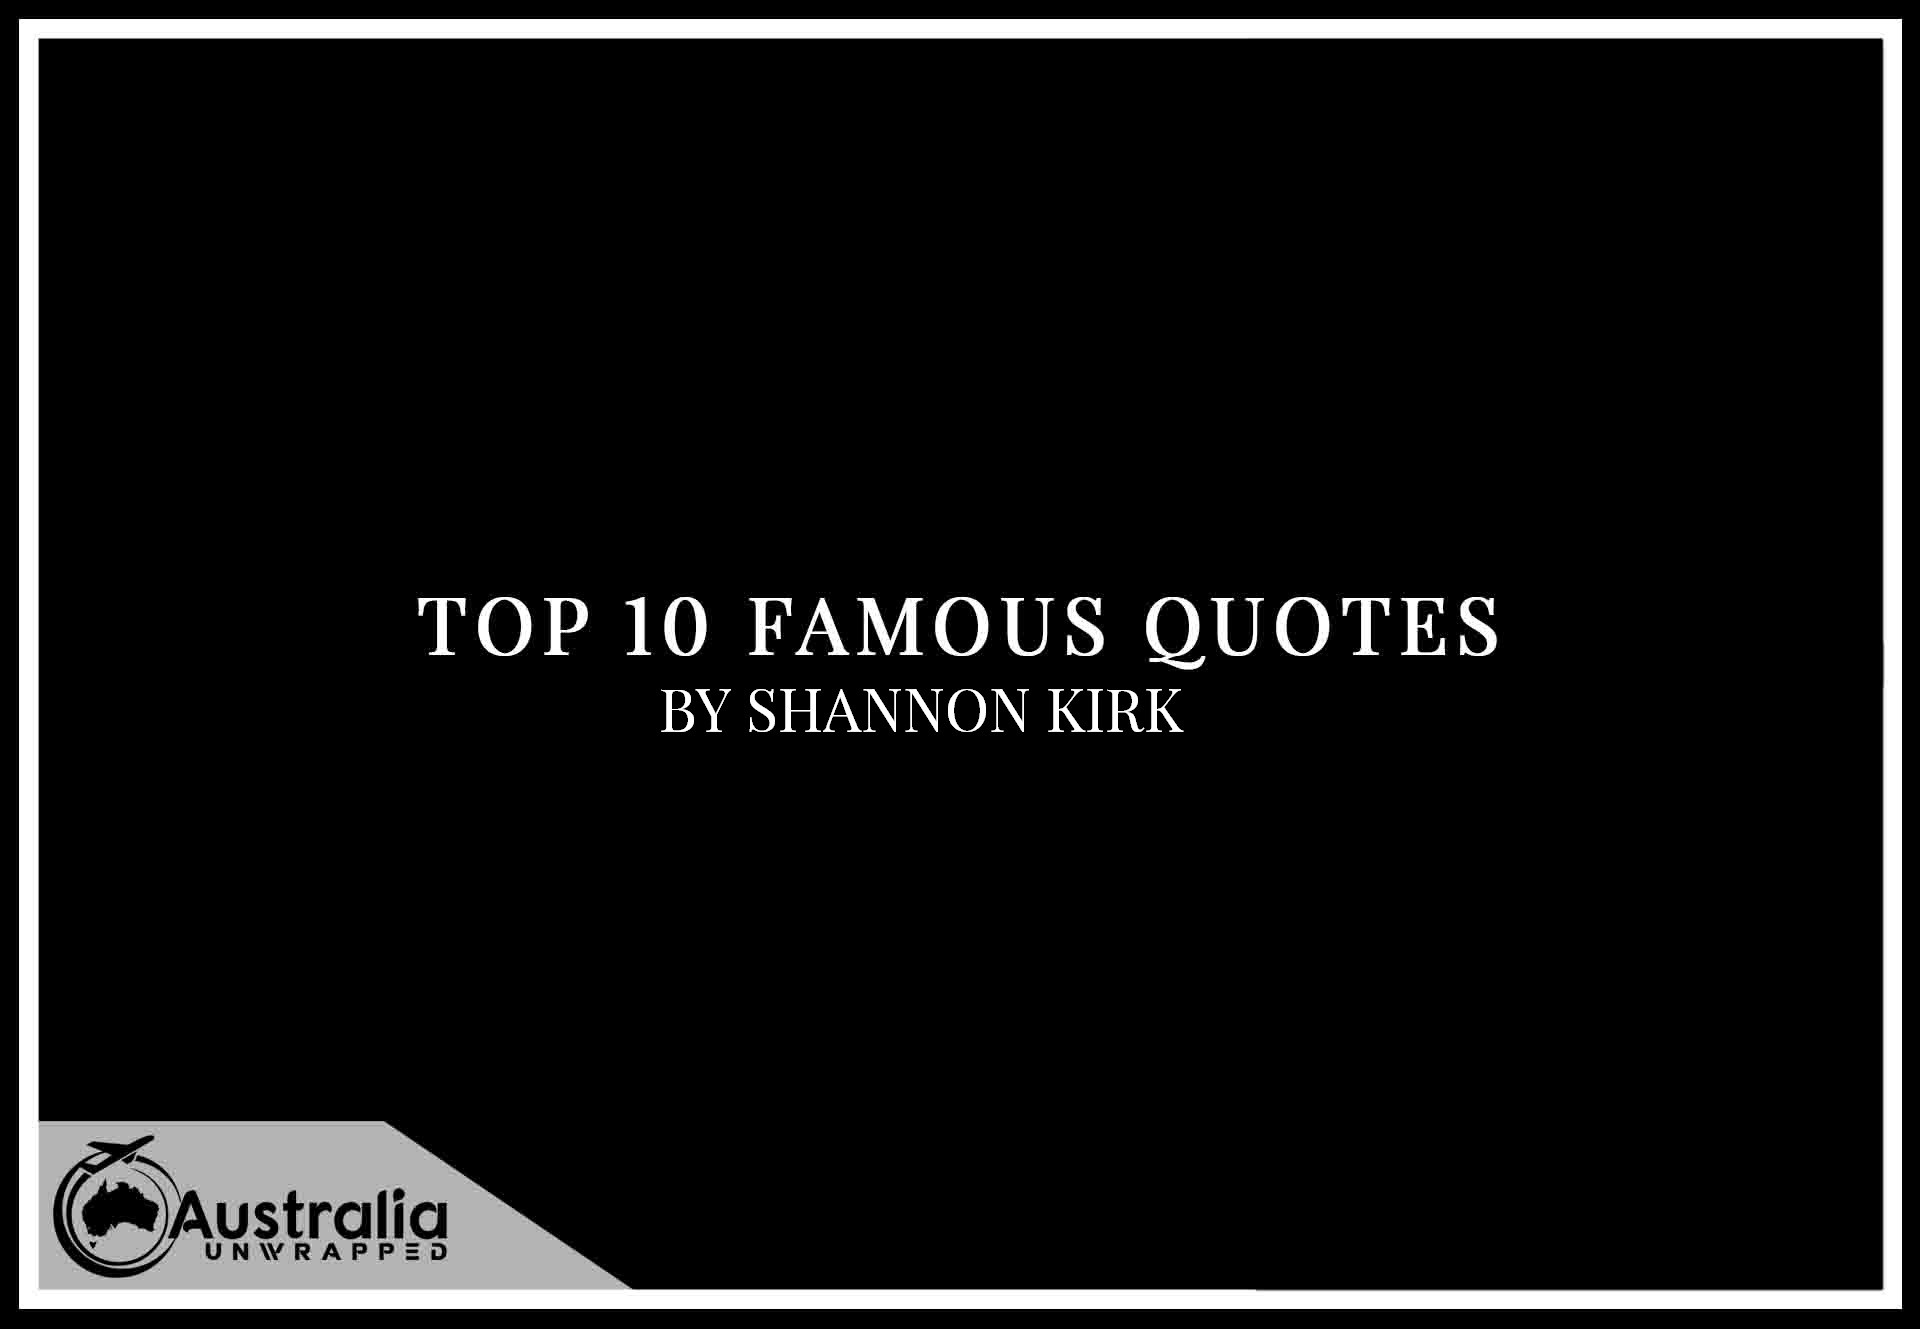 Top 10 Famous Quotes by Author Shannon Kirk